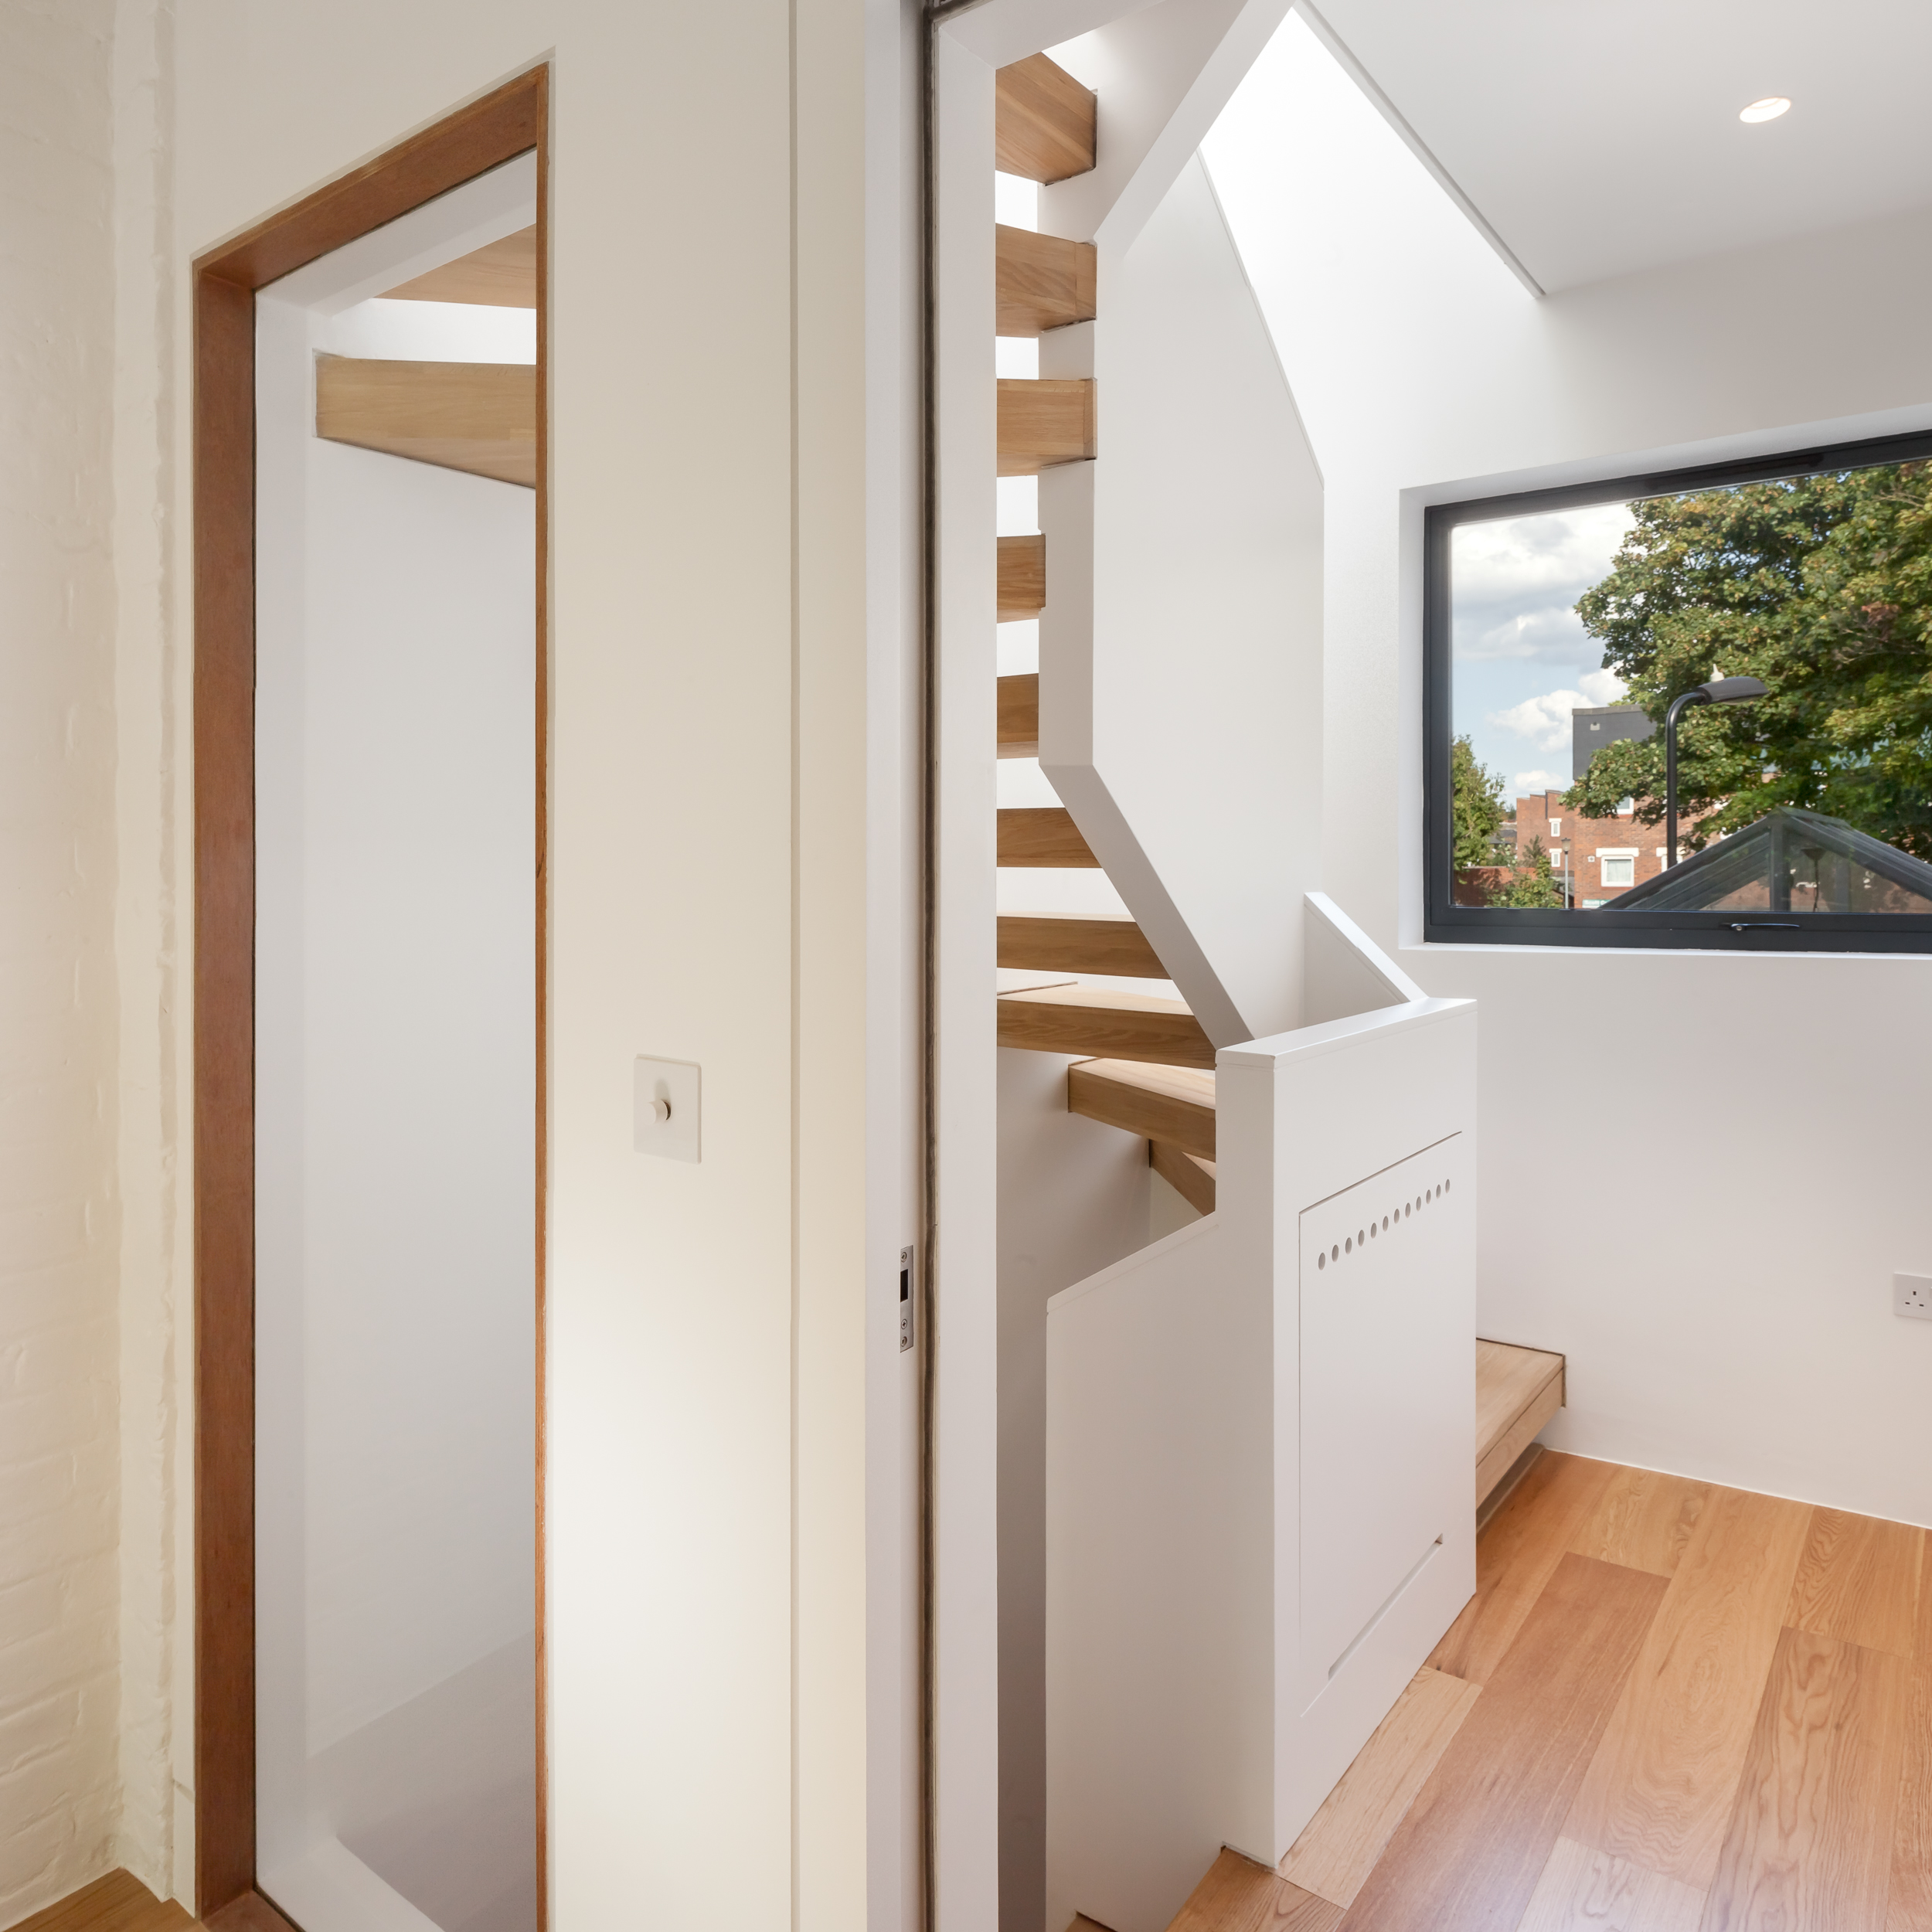 Pano_8617_8619-Edit - A+Architecture_Oldfield_Road.jpg